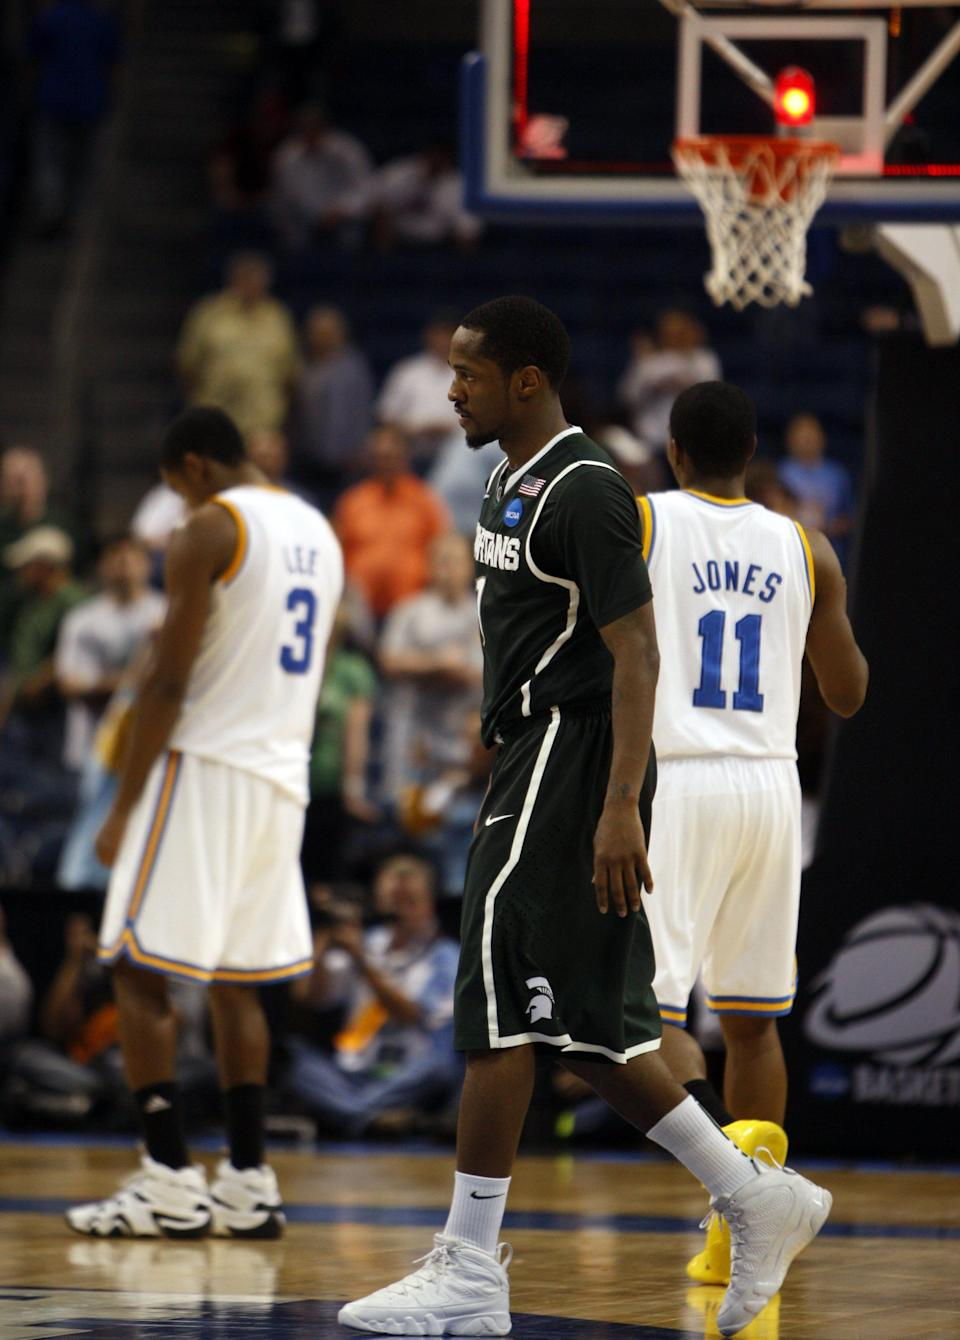 Michigan State's Kalin Lucas walks off the court after being called for traveling at the end of the 78-76 loss to UCLA in the of NCAA tournament on March 17, 2011, at the St. Pete Times Forum.